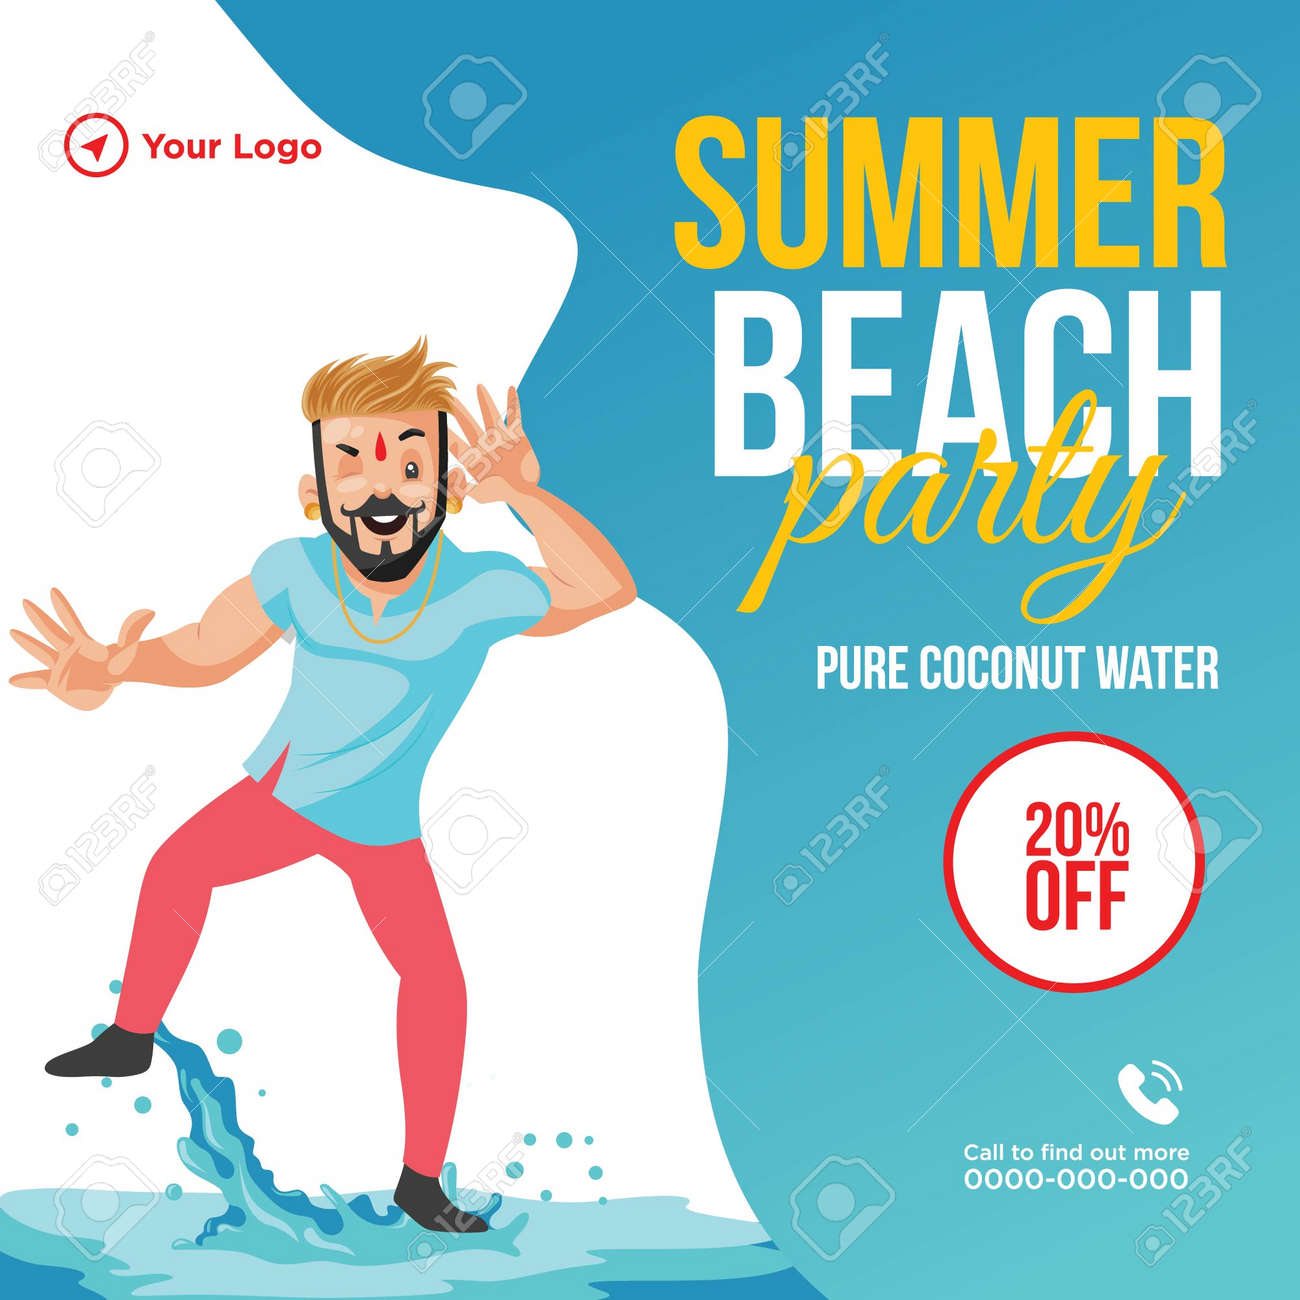 Summer beach party banner design template. Vector graphic illustration. - 171677491